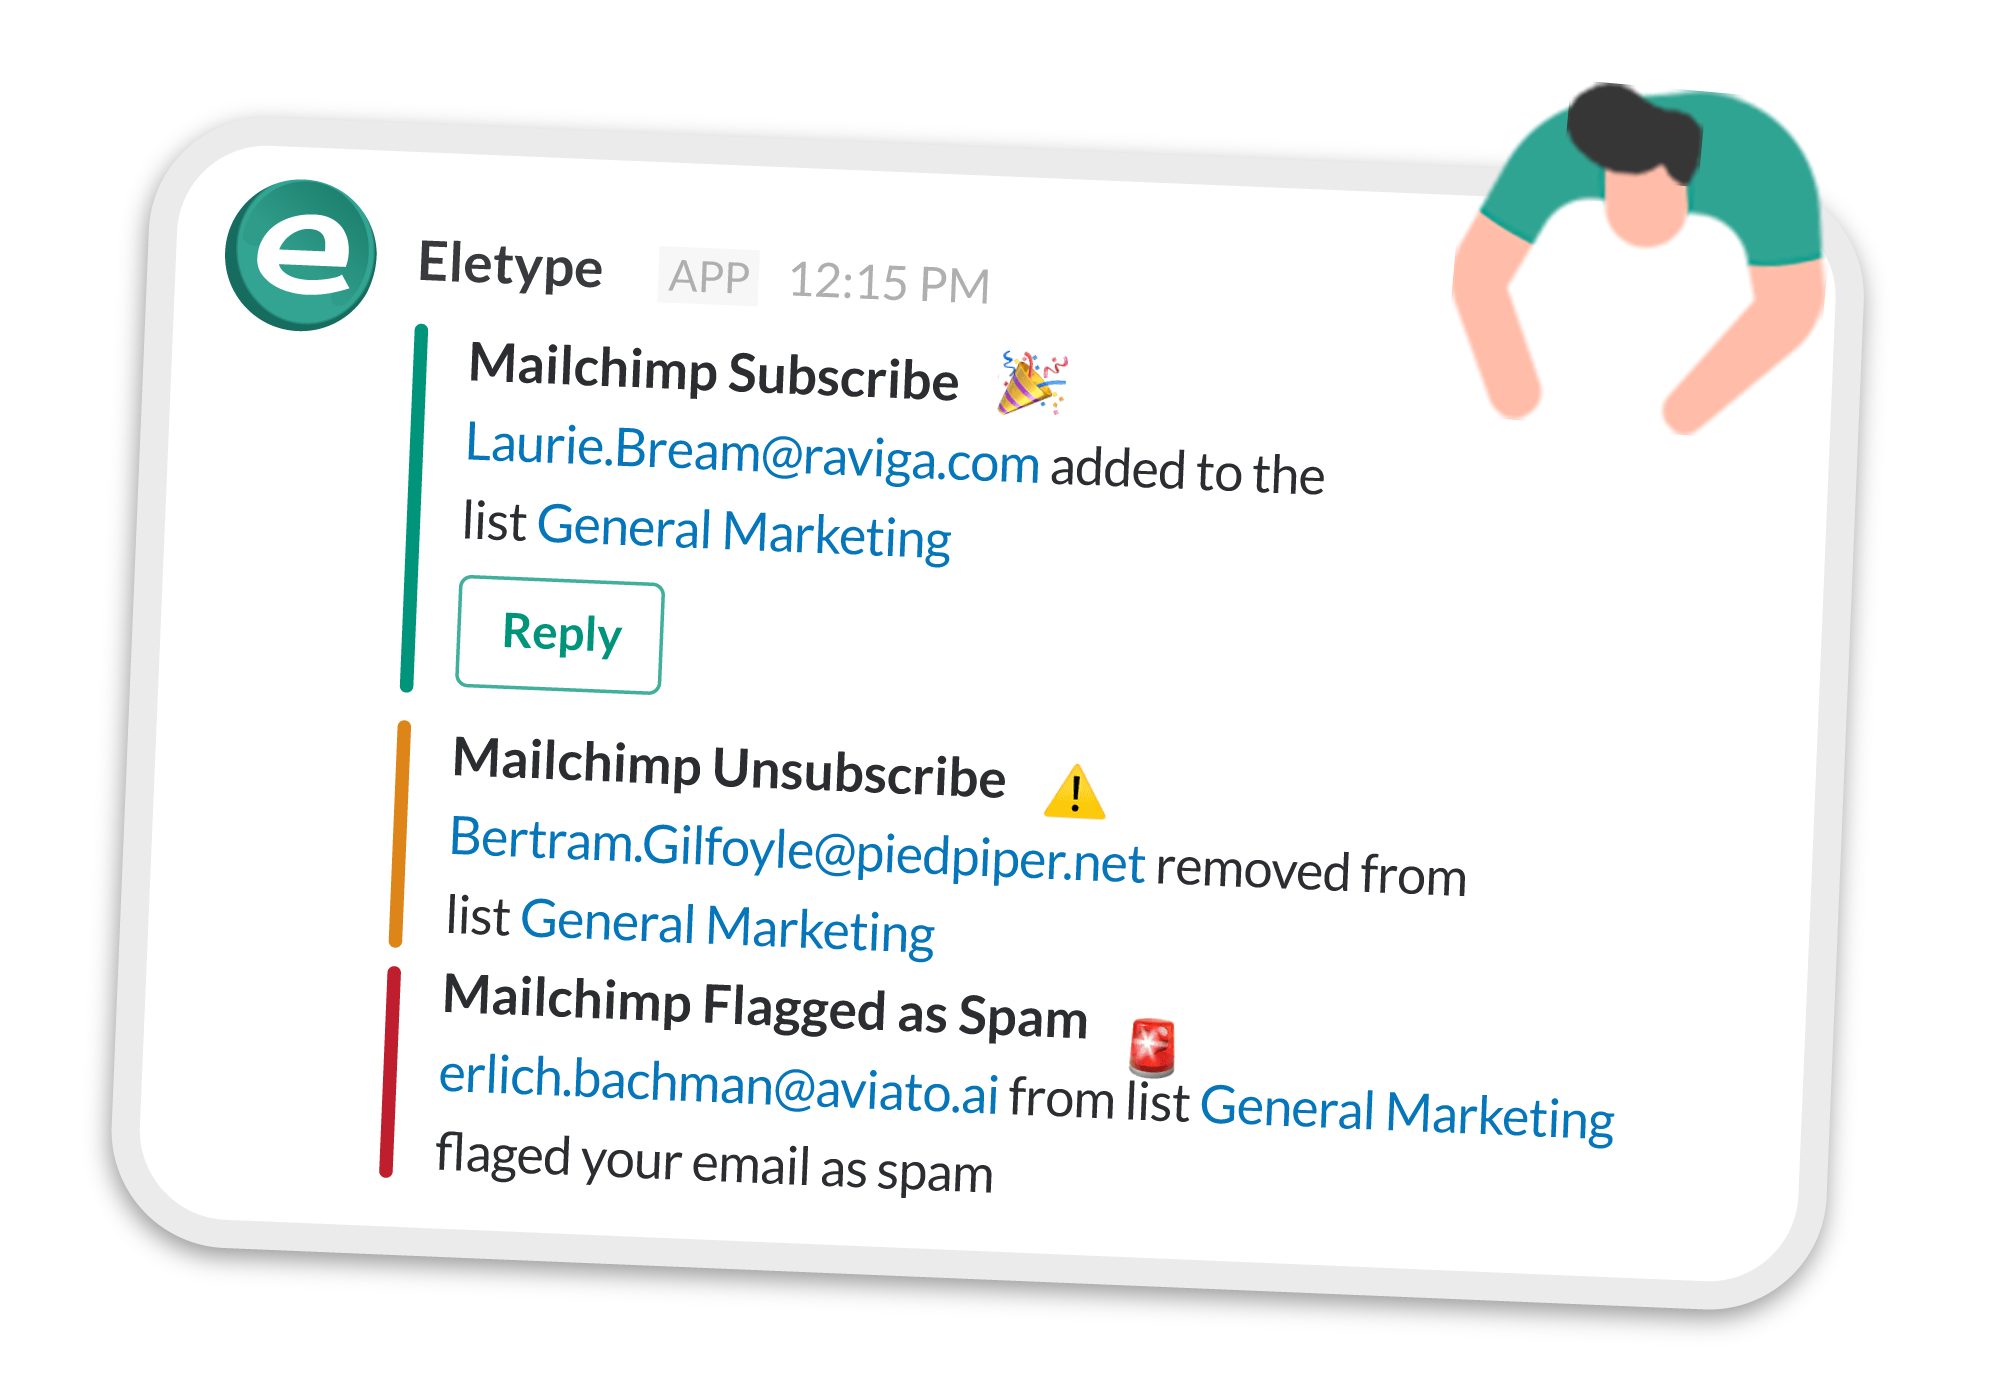 Eletype Mailchimp Real-Time Notifications